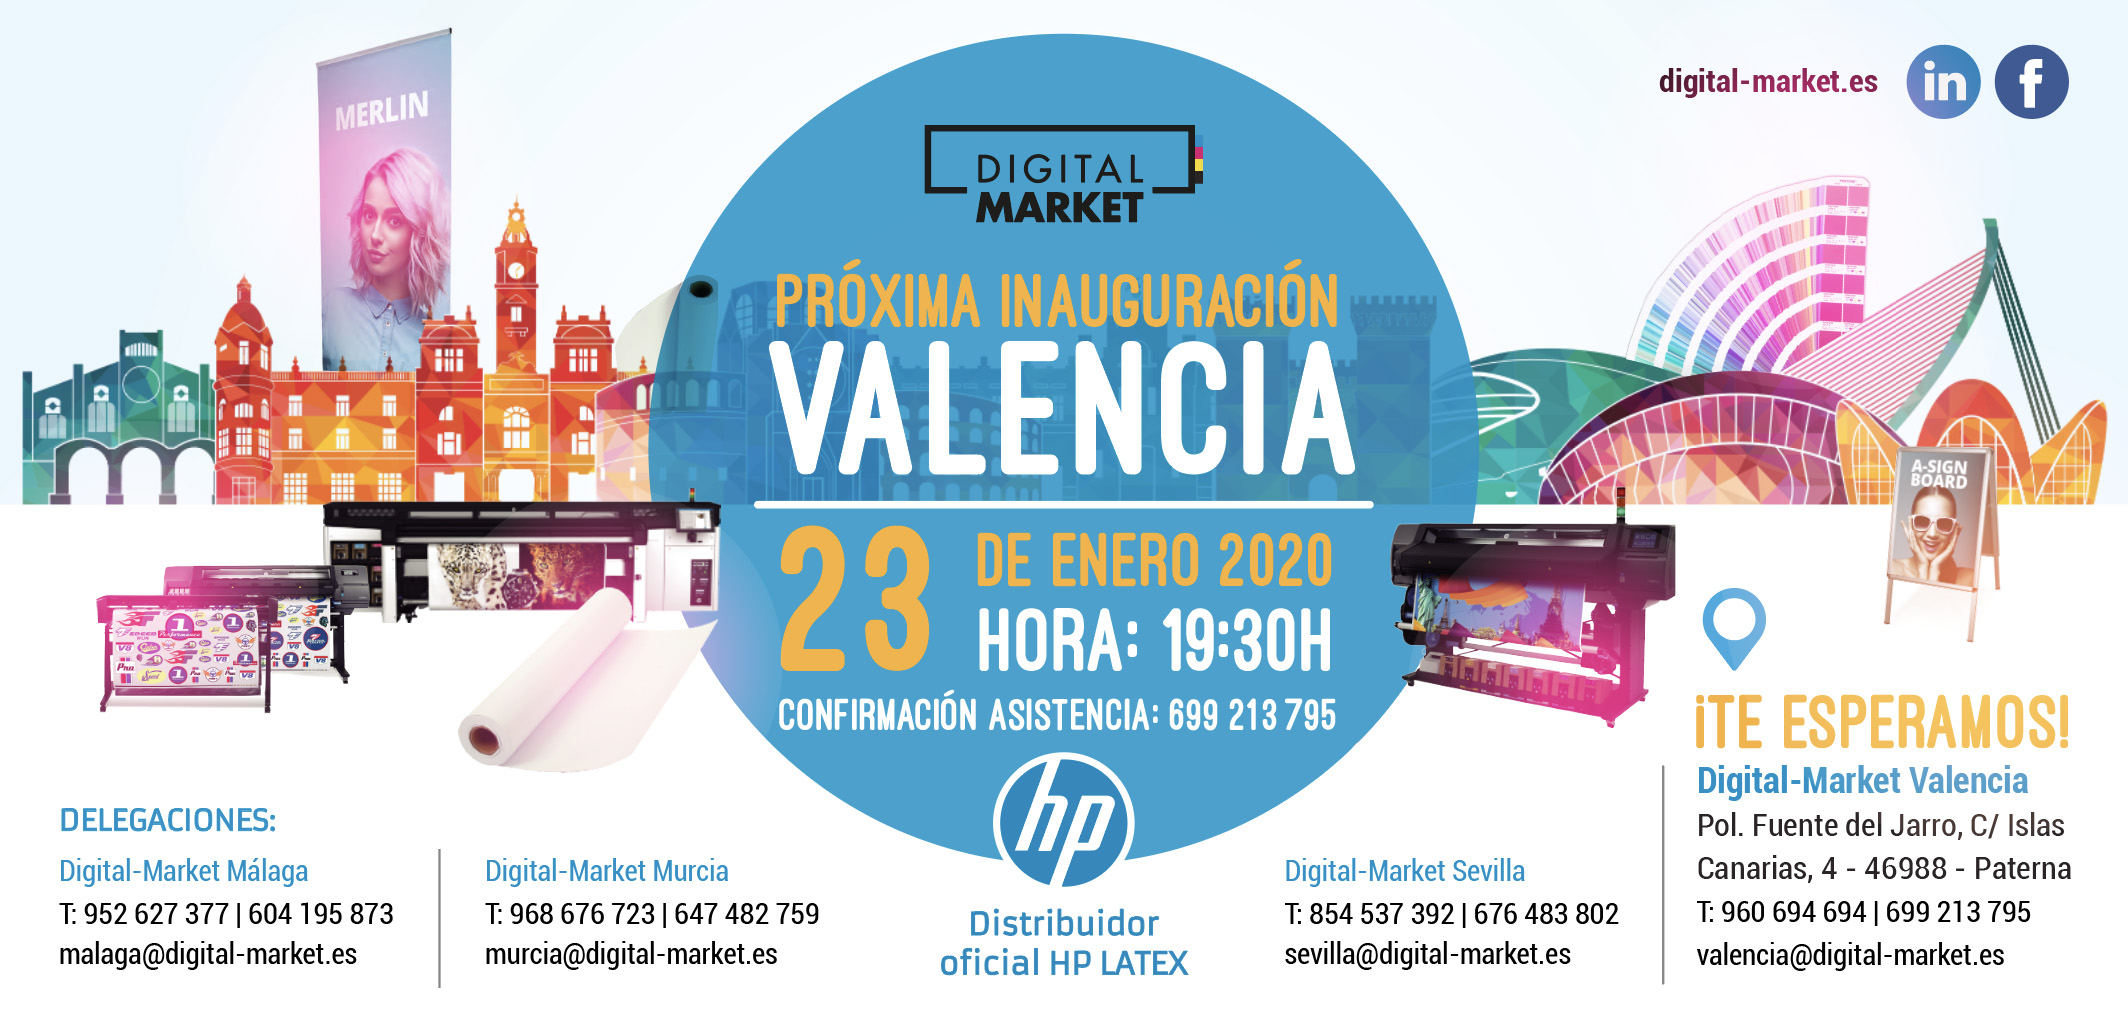 Invitacion-digital-market-valencia copia